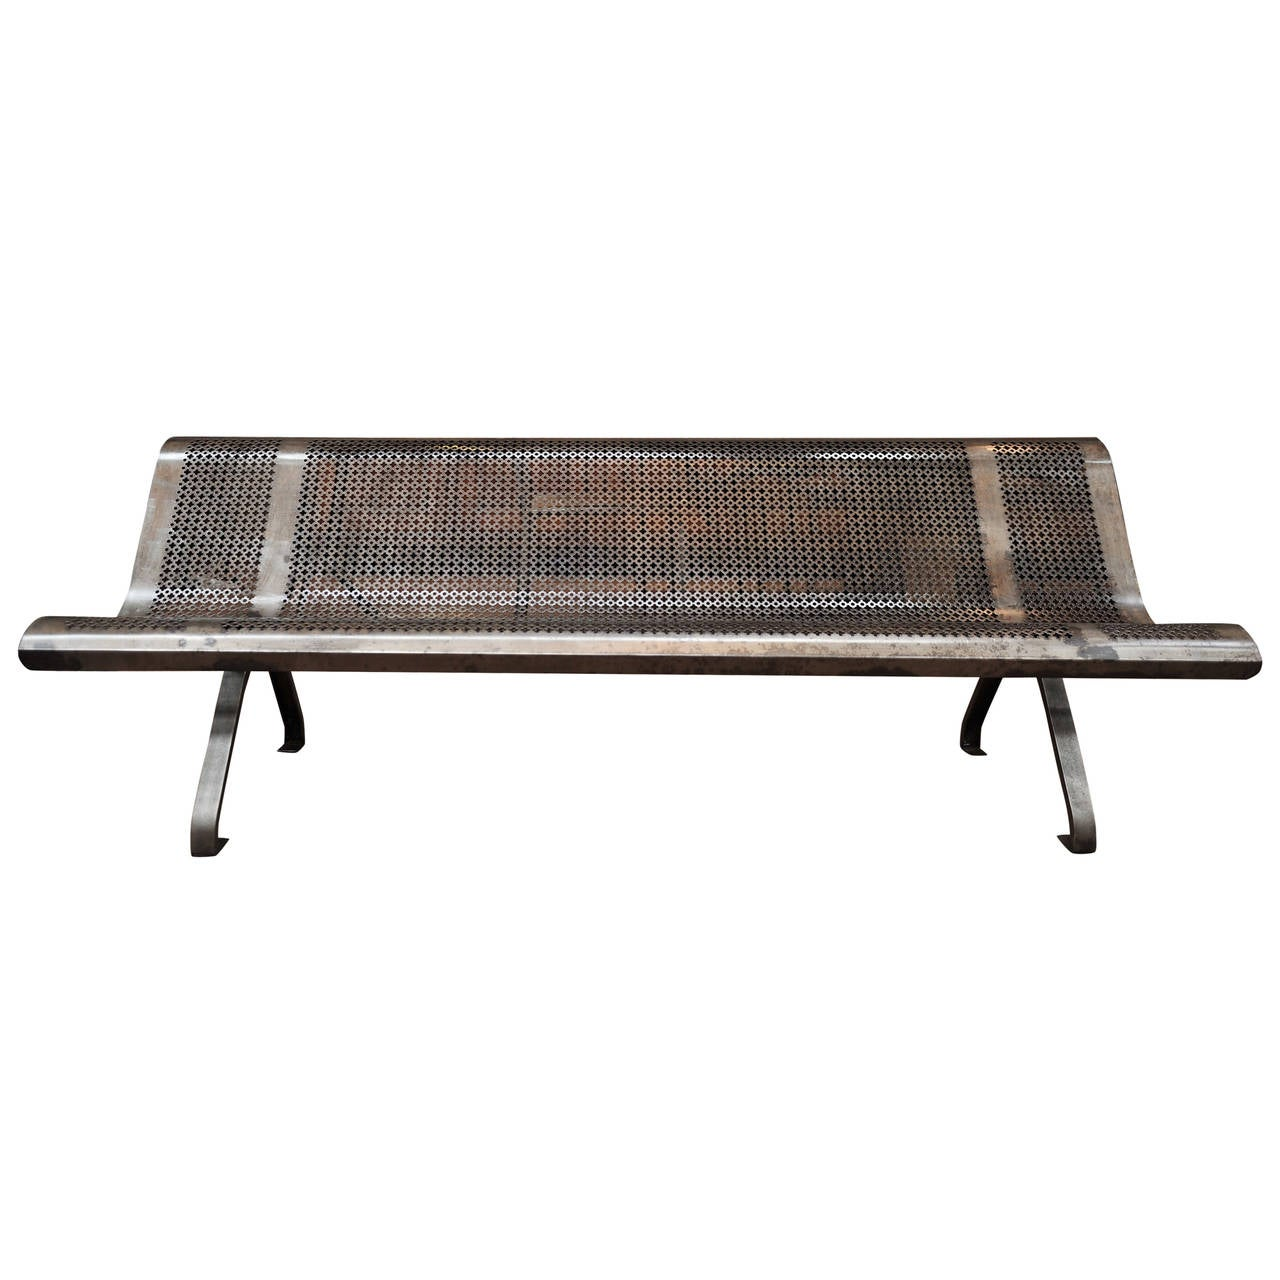 French Garden Metal Bench Circa 1950 For Sale At 1stdibs